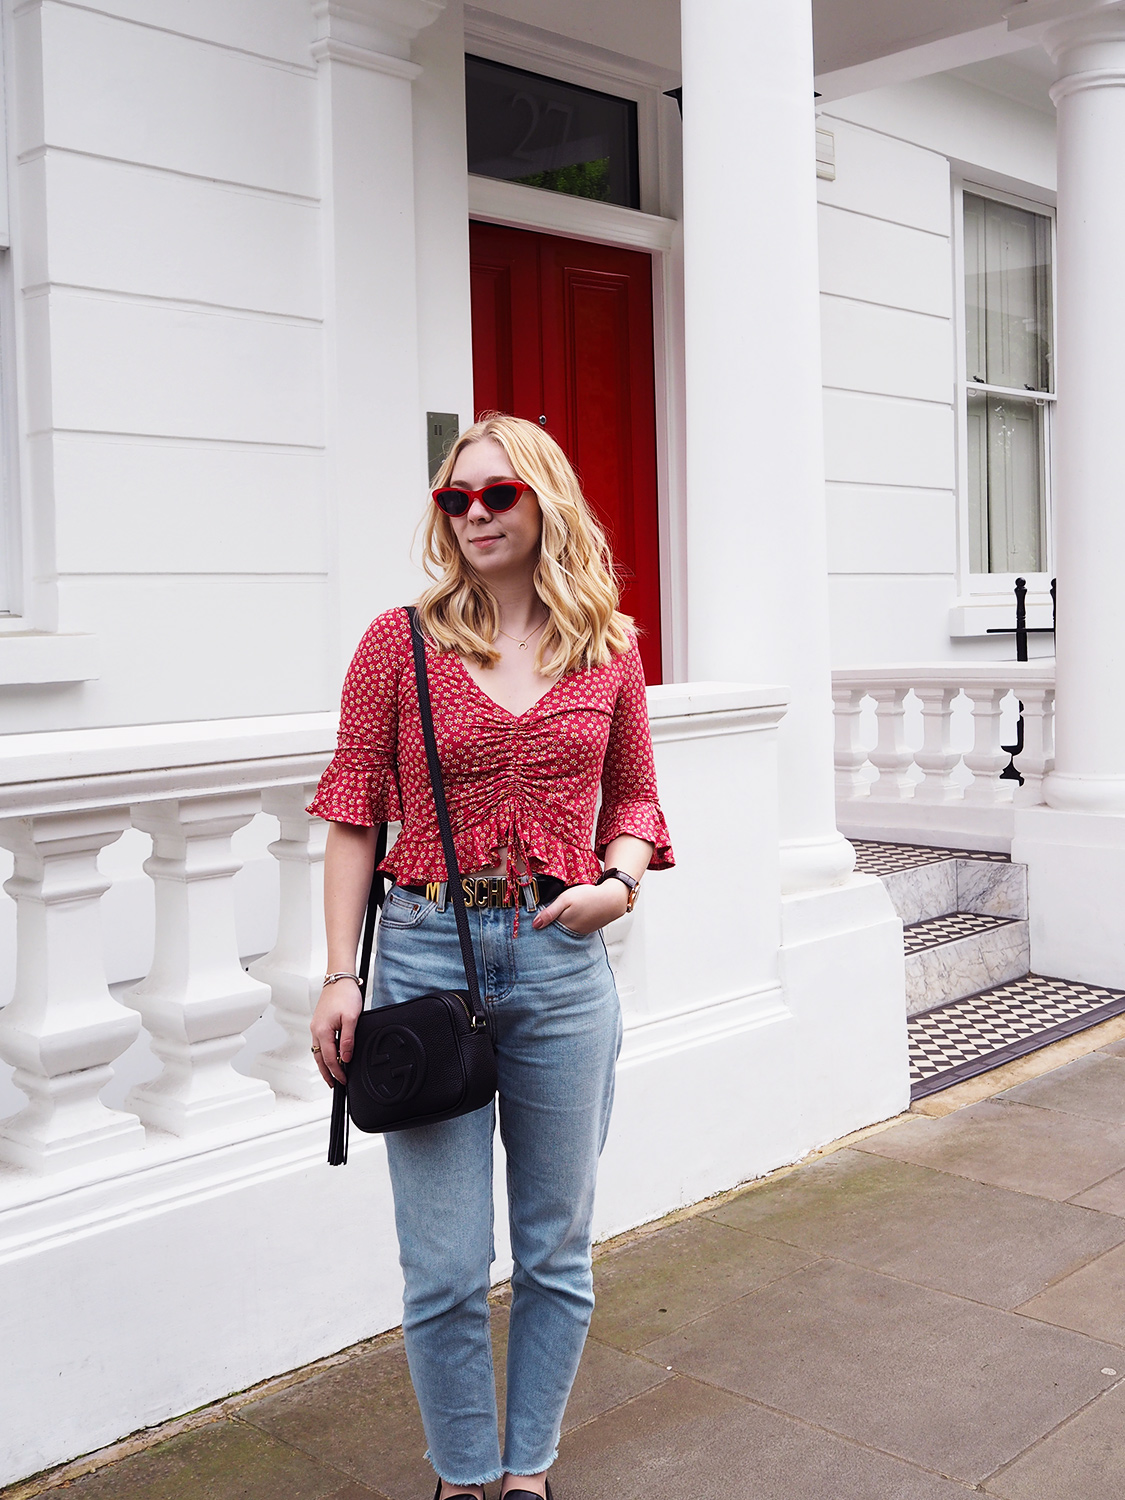 The Style Edit – All the Red